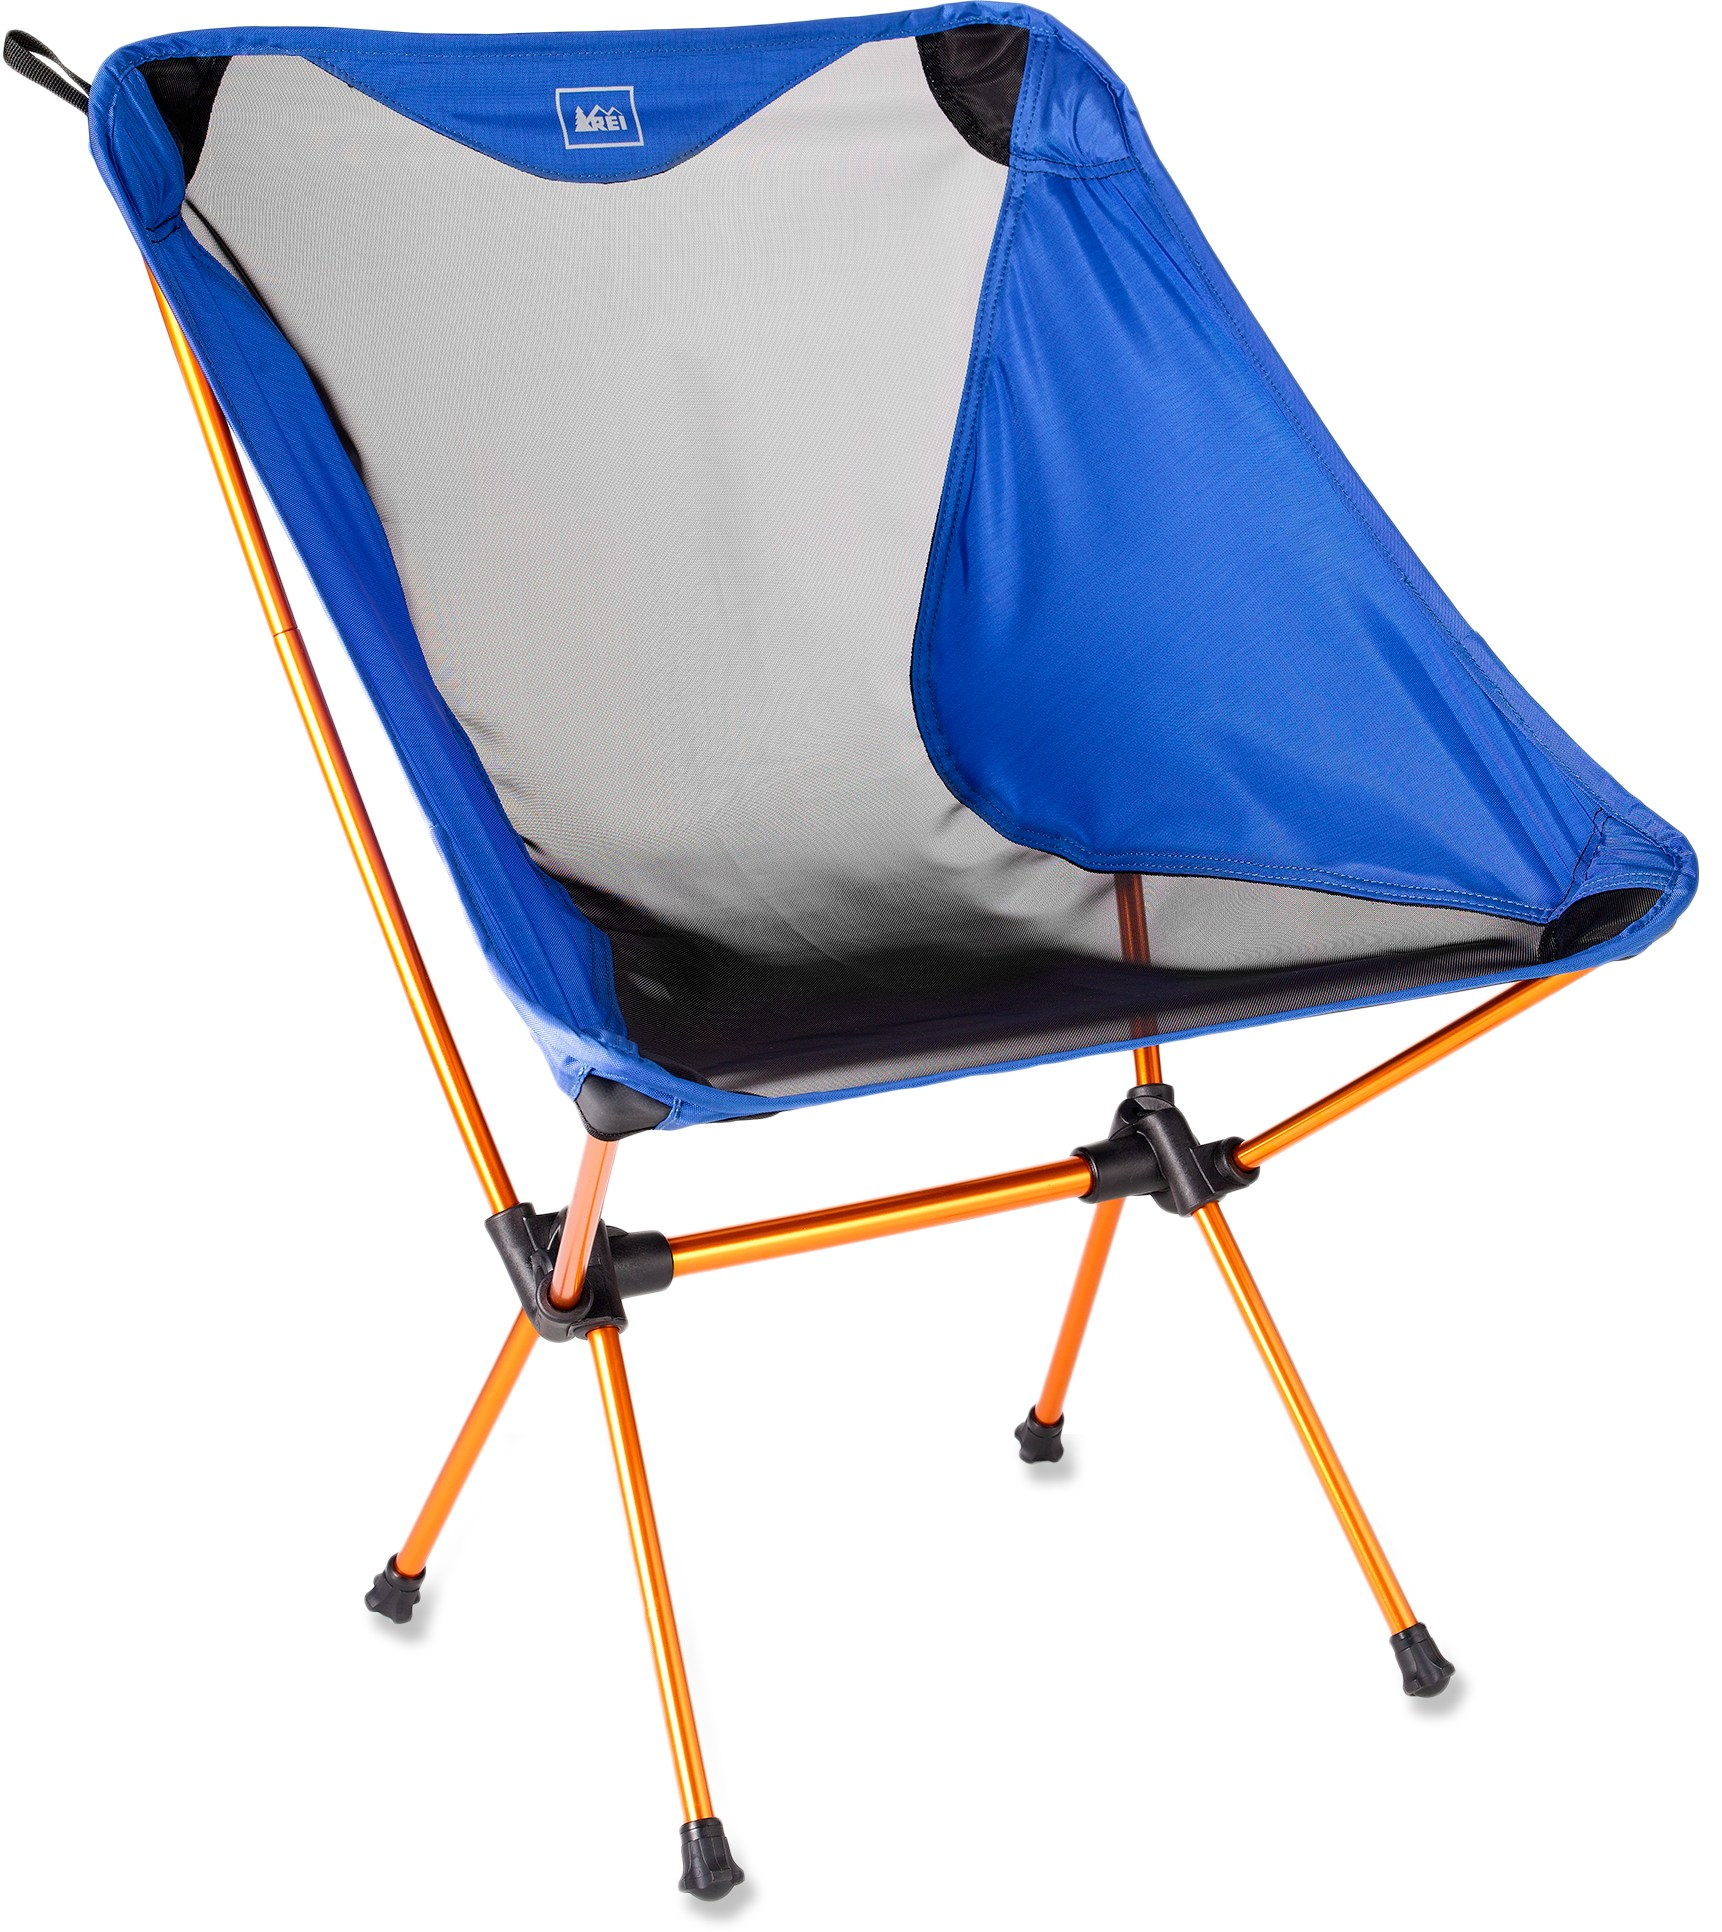 lightweight camping chair pedalling along. Black Bedroom Furniture Sets. Home Design Ideas